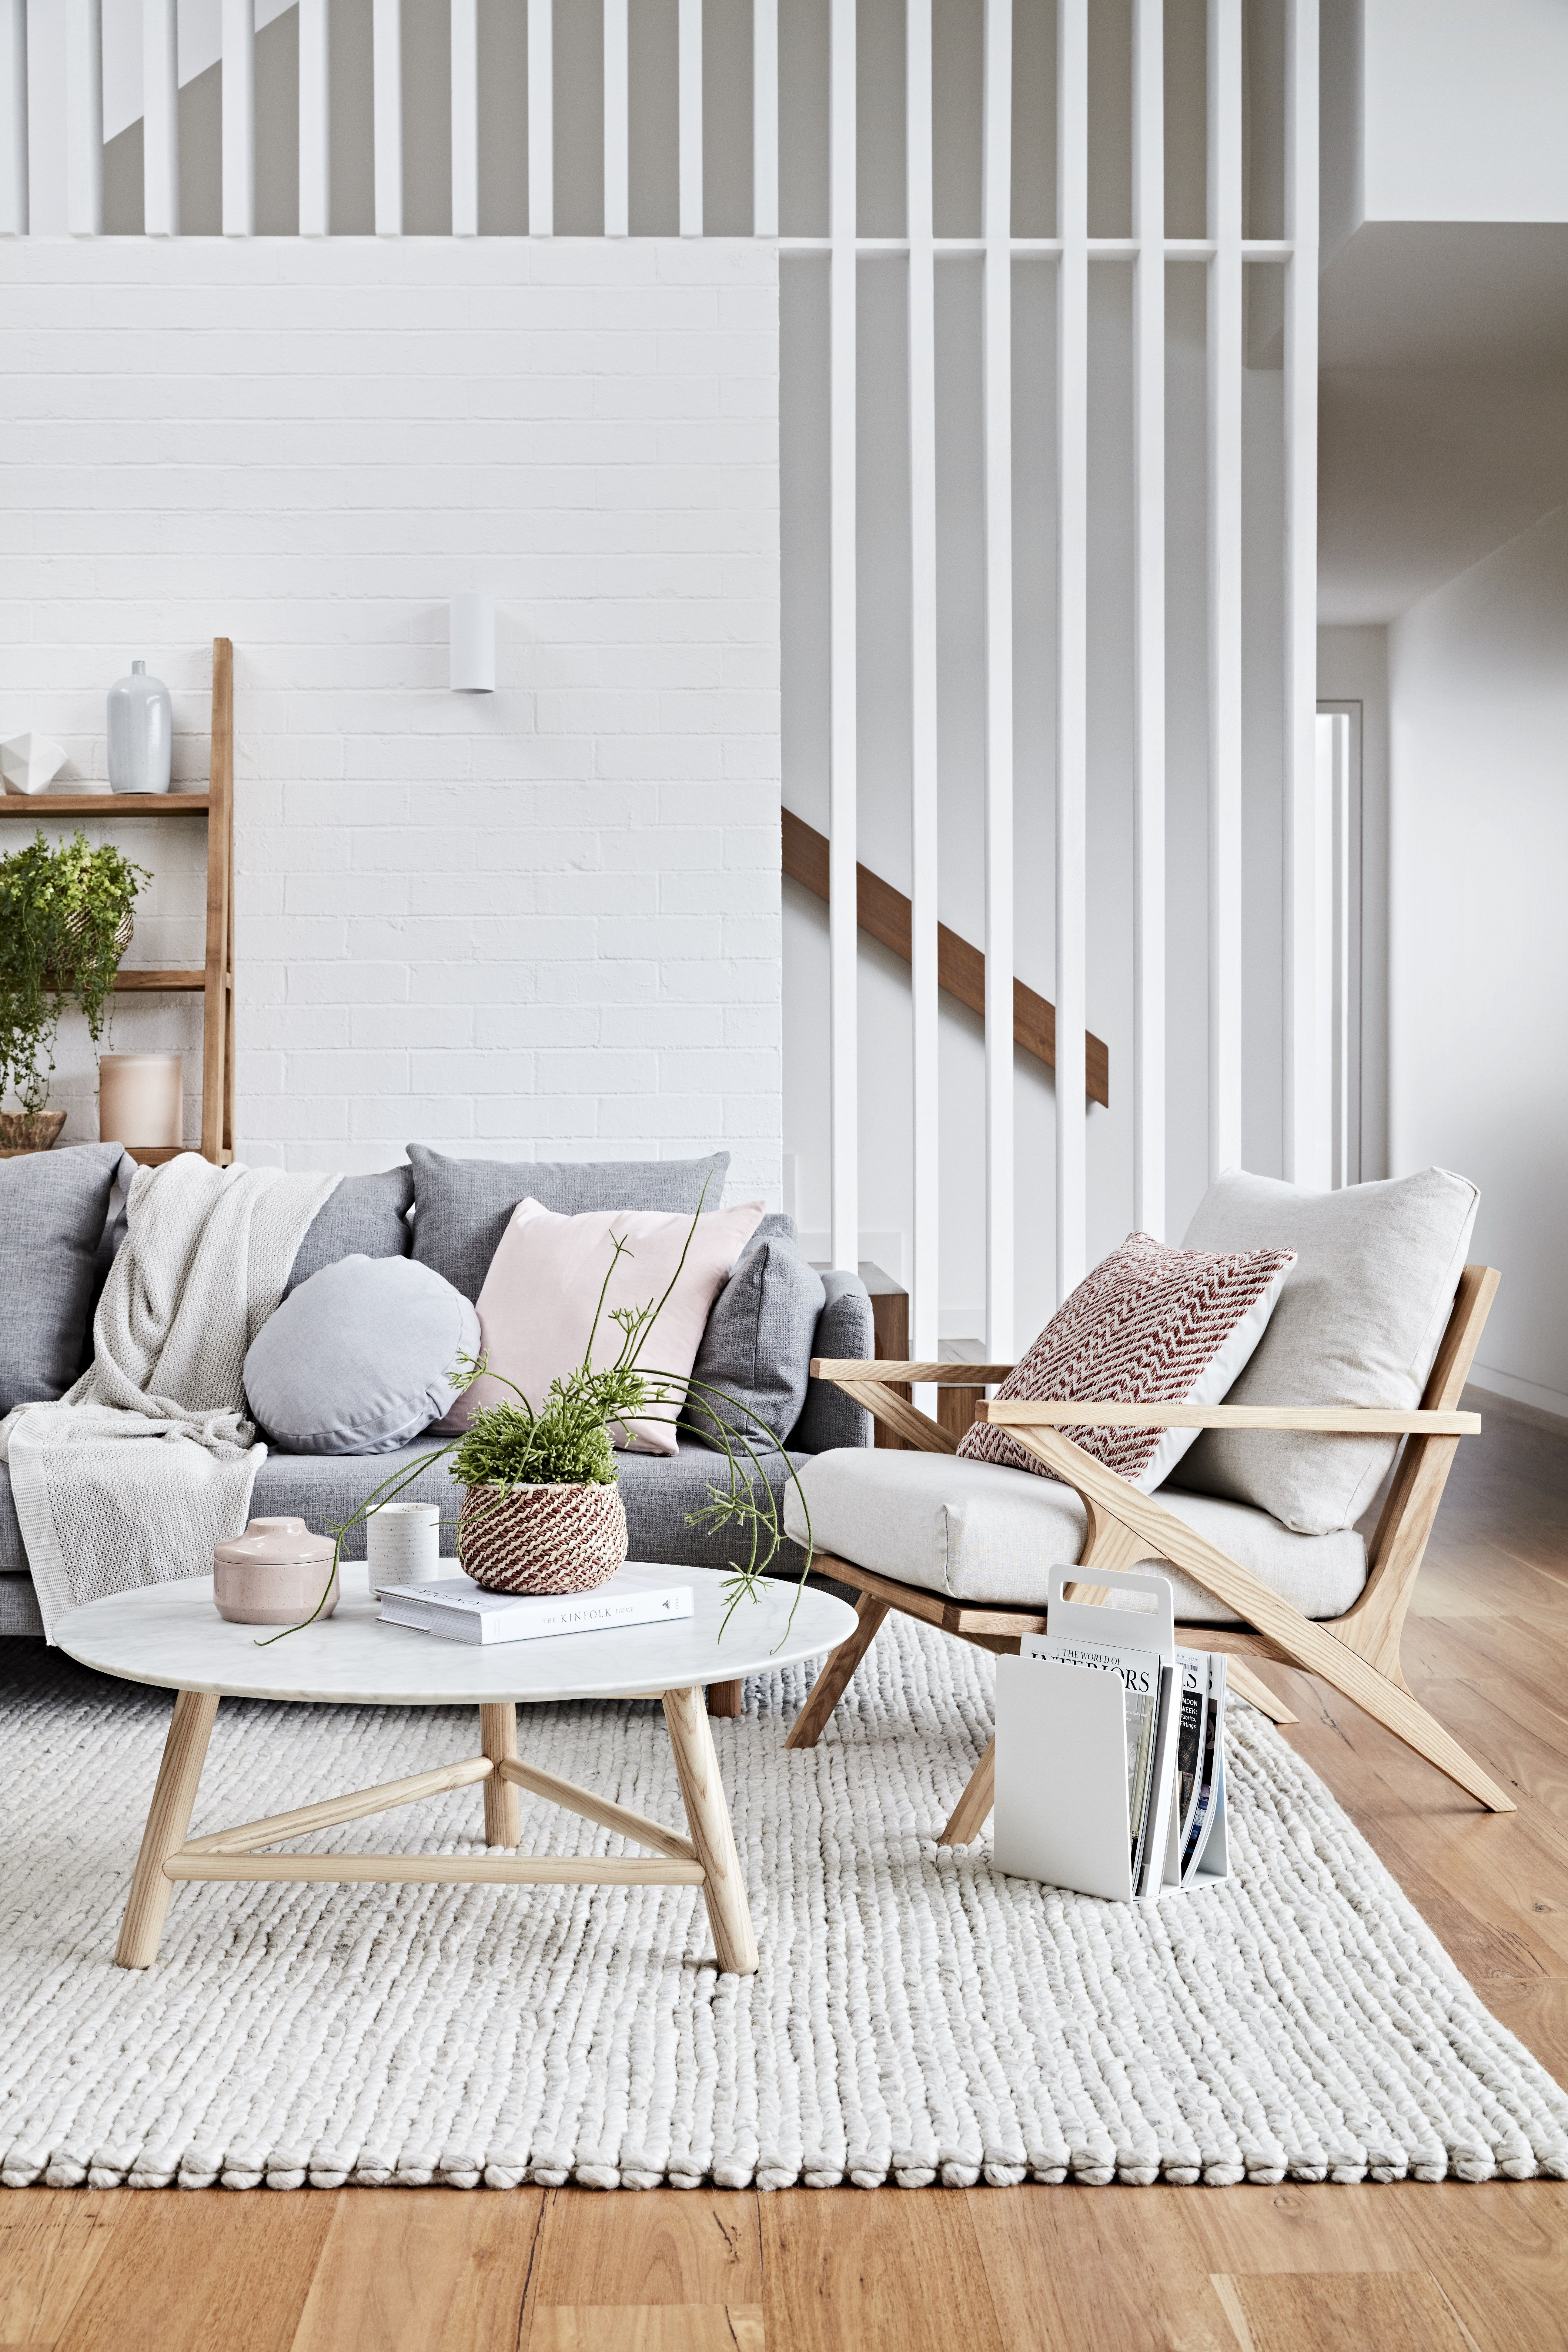 Scandinavian Style Elements 1 Lots Of White 2 Use Of Light Toned Wood On Floor Furniture 3 Lo Living Room Scandinavian House Interior Living Room Decor